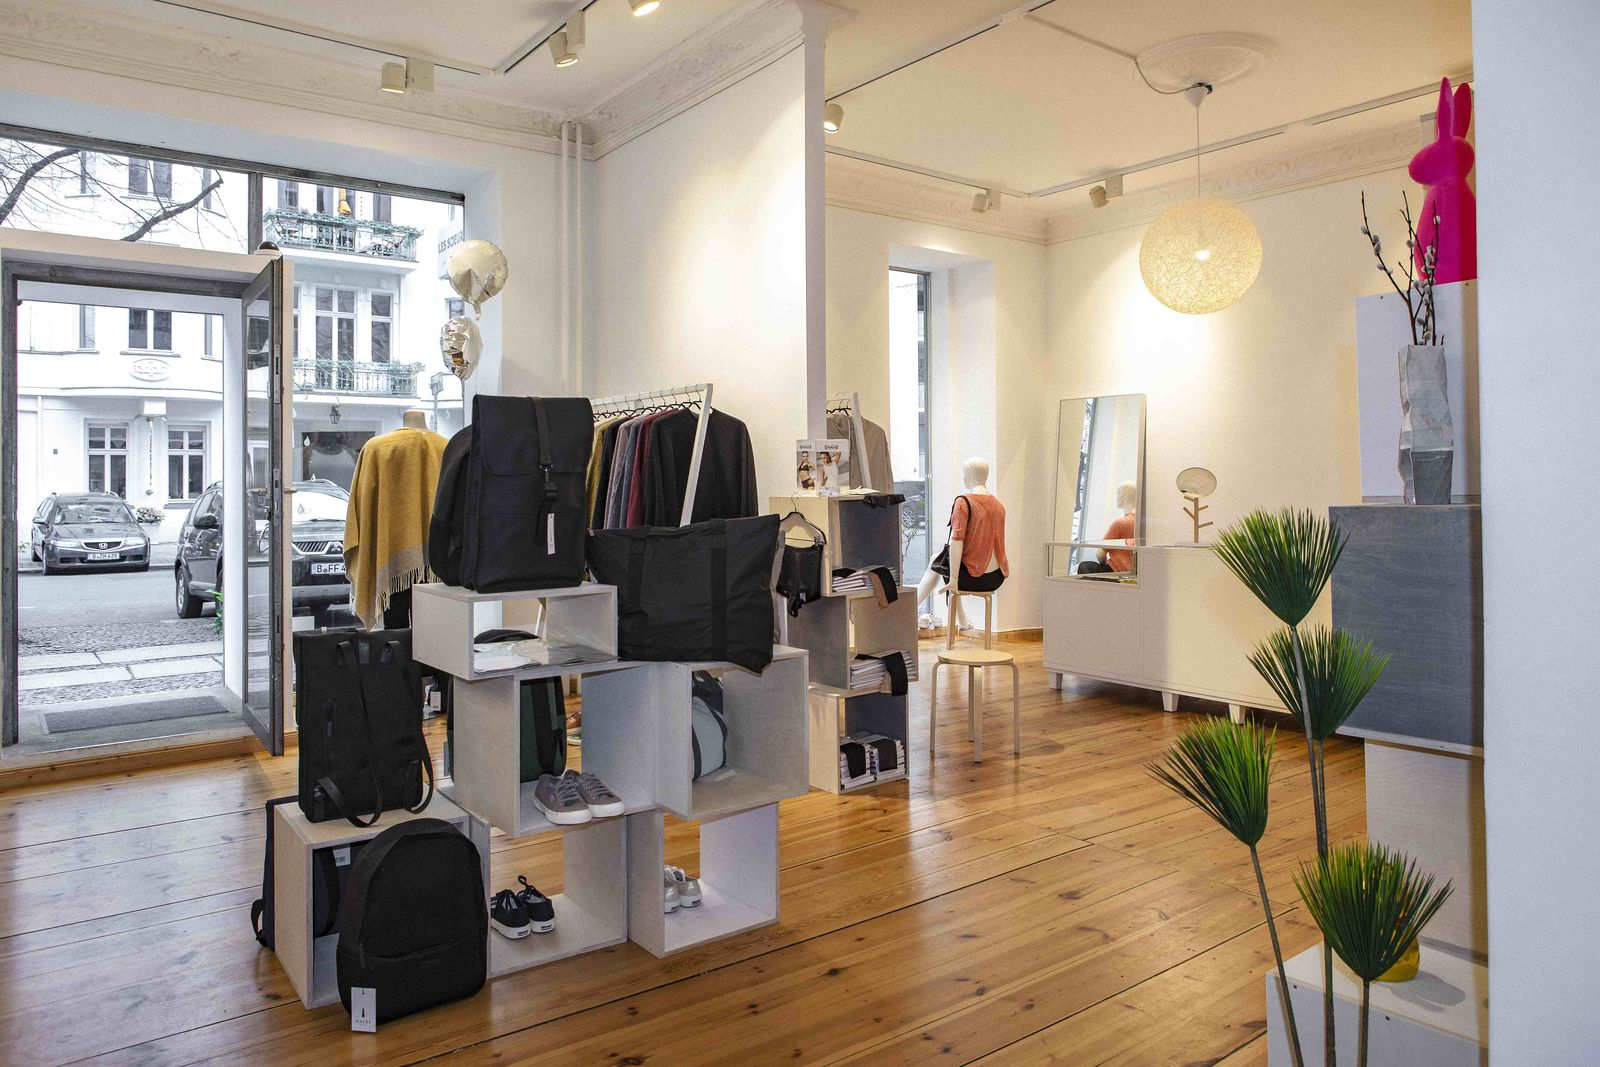 Les Soeurs Shop - The Curvy Concept Store in Berlin (Bild 3)